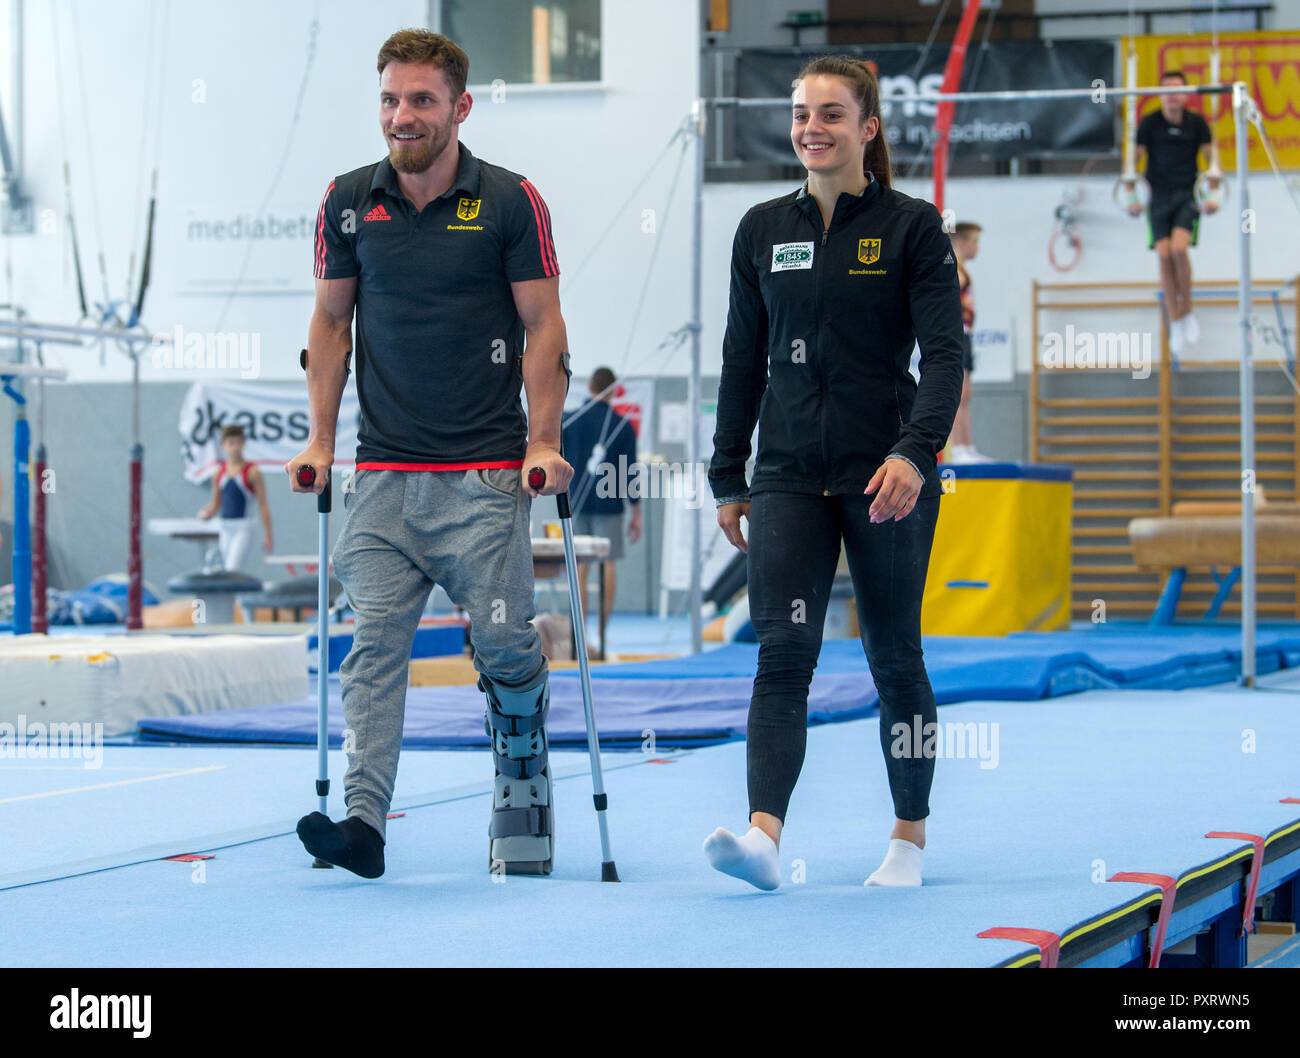 17 October 2018, Saxony, Chemnitz: High bar specialist Andreas Bretschneider goes to walking aids next to Pauline Schäfer, world champion at the balance beam, through the gymnasium in the Sportforum Chemnitz. The top gymnasts from Chemnitz miss the World Championship in Doha due to injury. Schäfer is still suffering from an ankle injury. Bretschneider tore his Achilles tendon in his left foot at the German Championships in Leipzig. (to dpa-message: 'Sad pair of gymnasts: Shepherds and Bretschneider experience World Championships before TV' from 24.10.2018) Photo: Hendrik Schmidt/dpa-Zentralbil - Stock Image